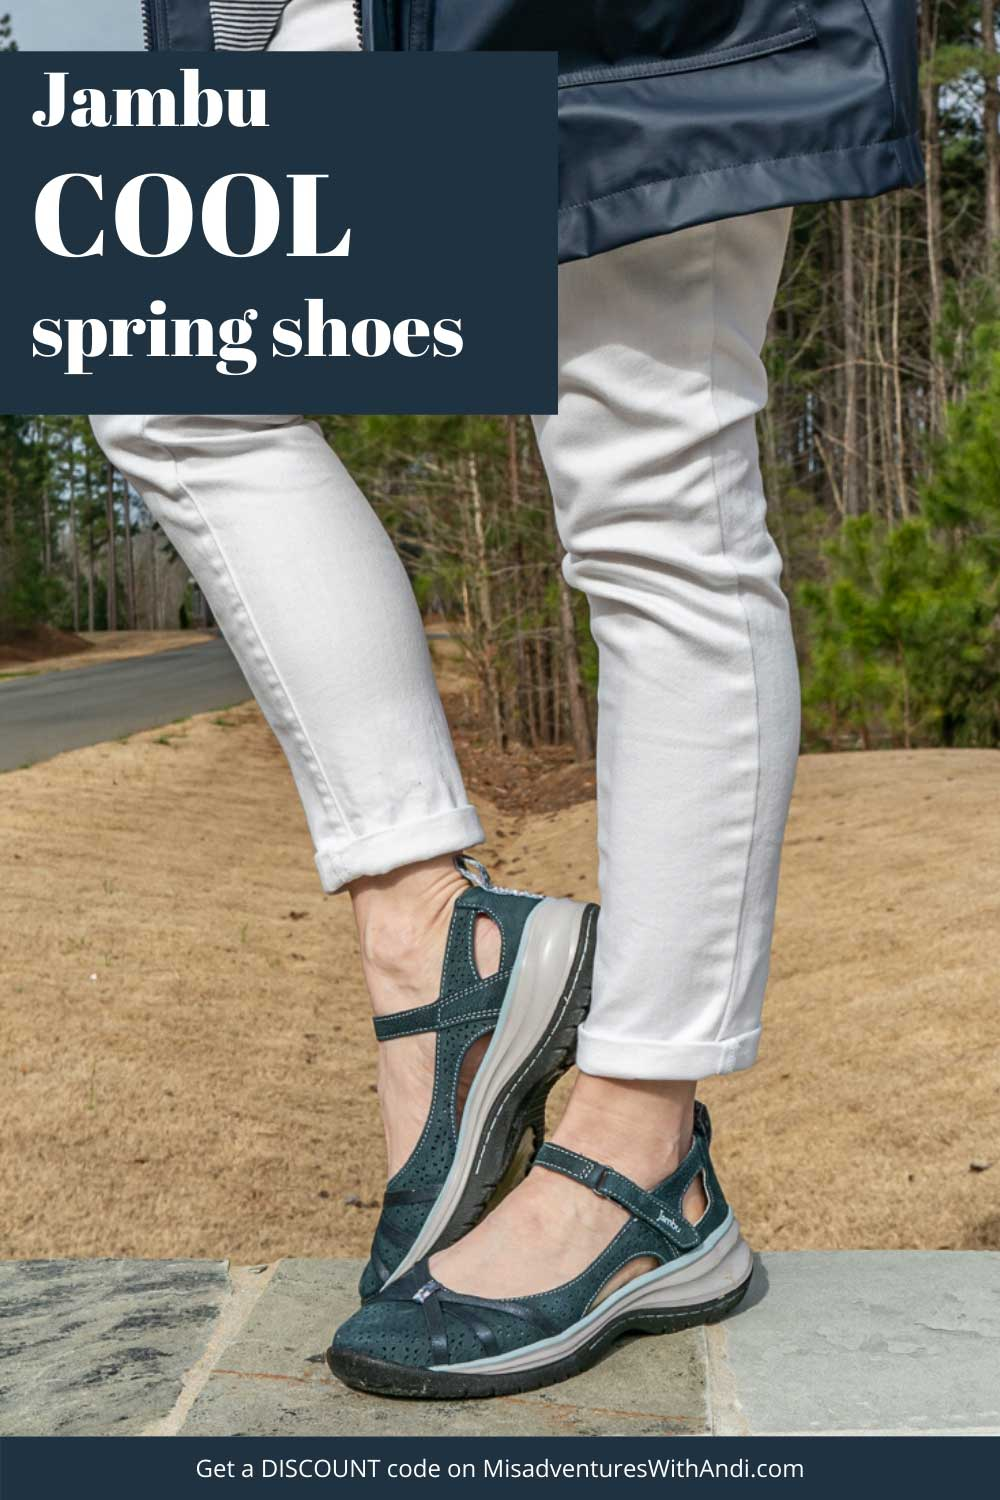 Jambu comfortable travel shoes for spring